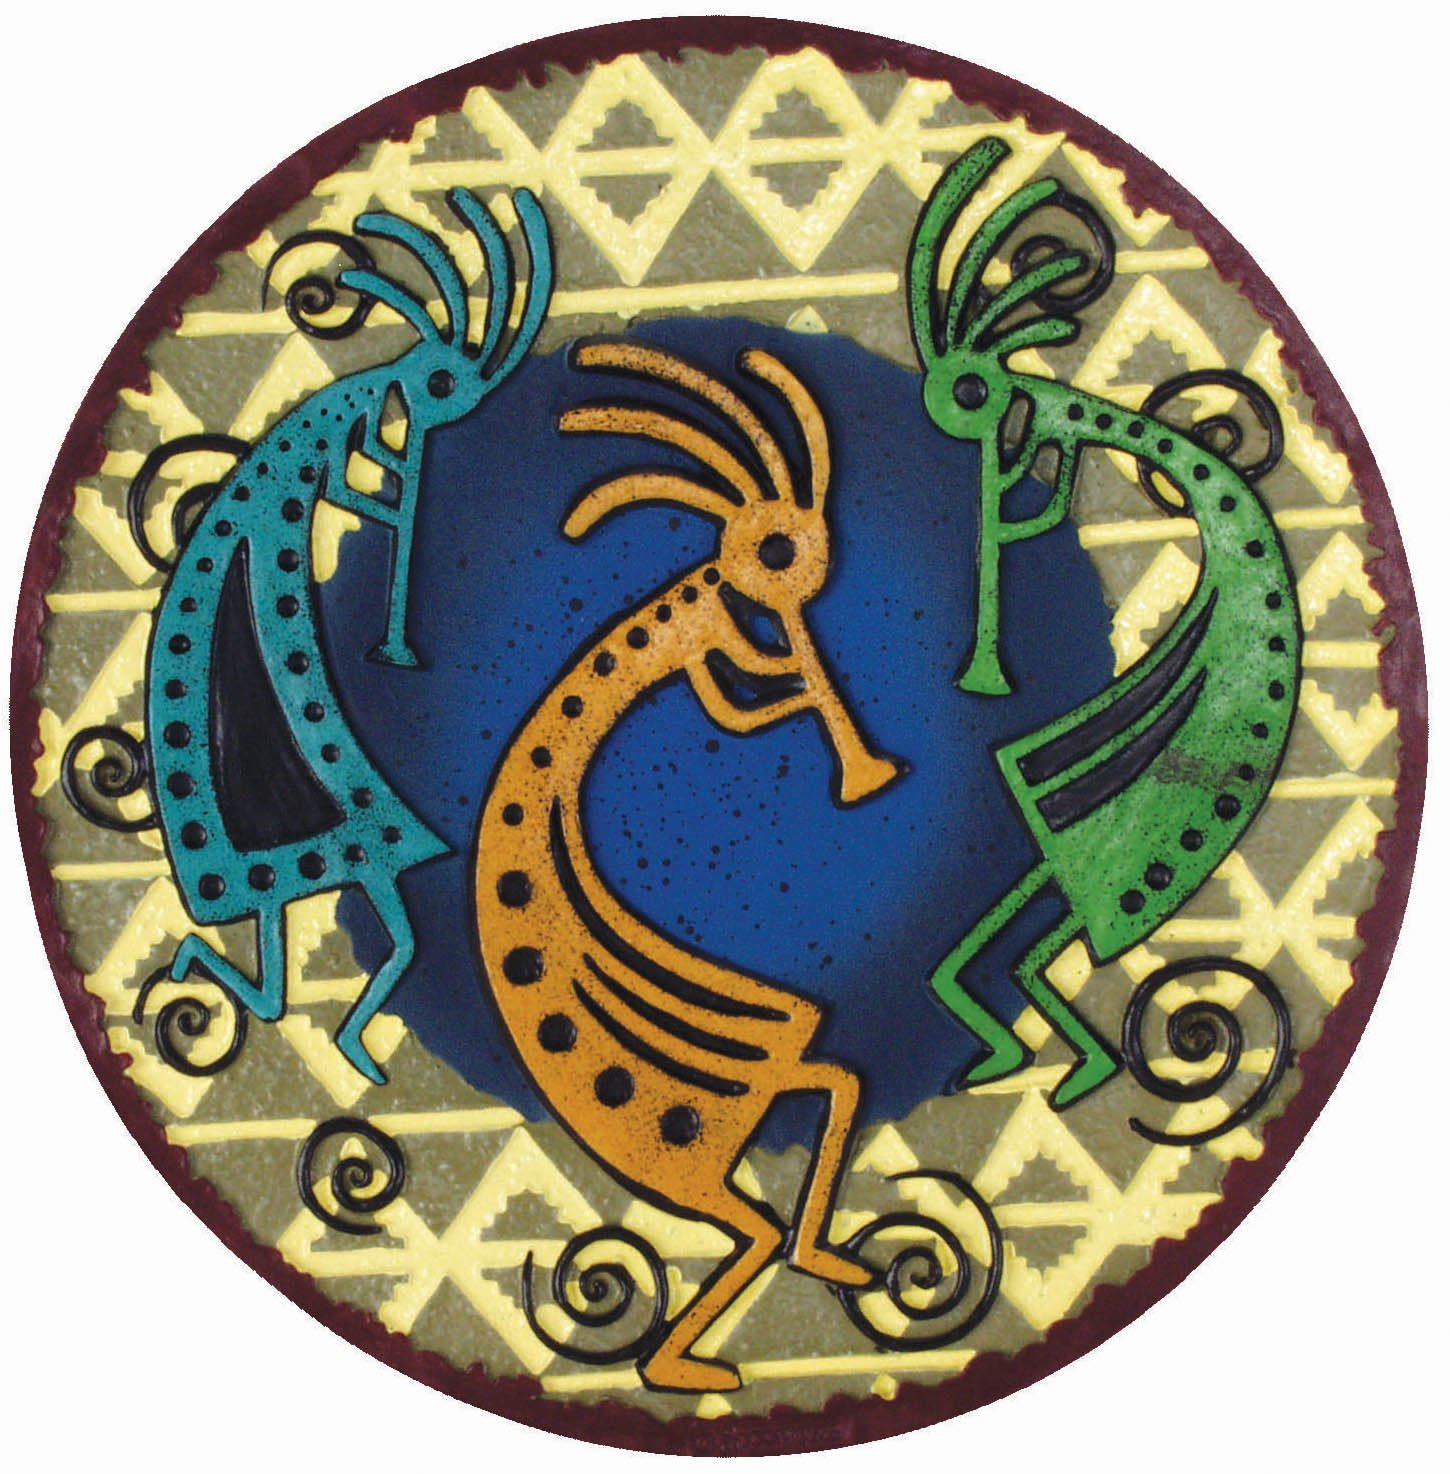 Spoontiques 13036 Kokopelli Stepping Stone by Spoontiques